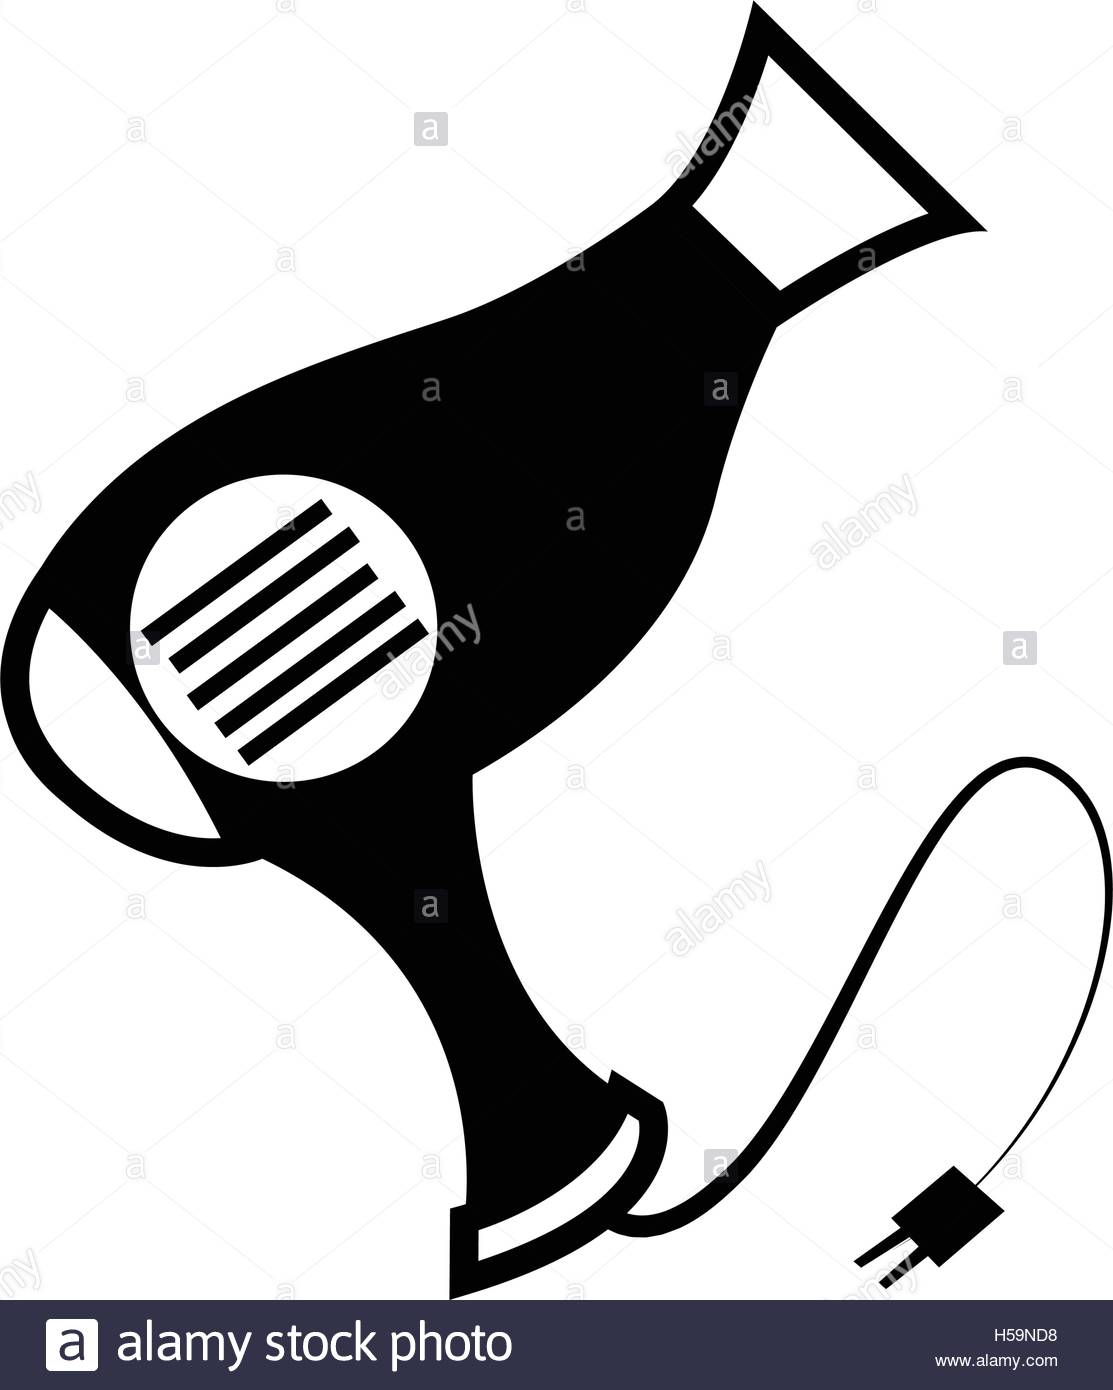 1113x1390 Isolated Silhouette Of A Hair Dryer, Vector Illustration Stock